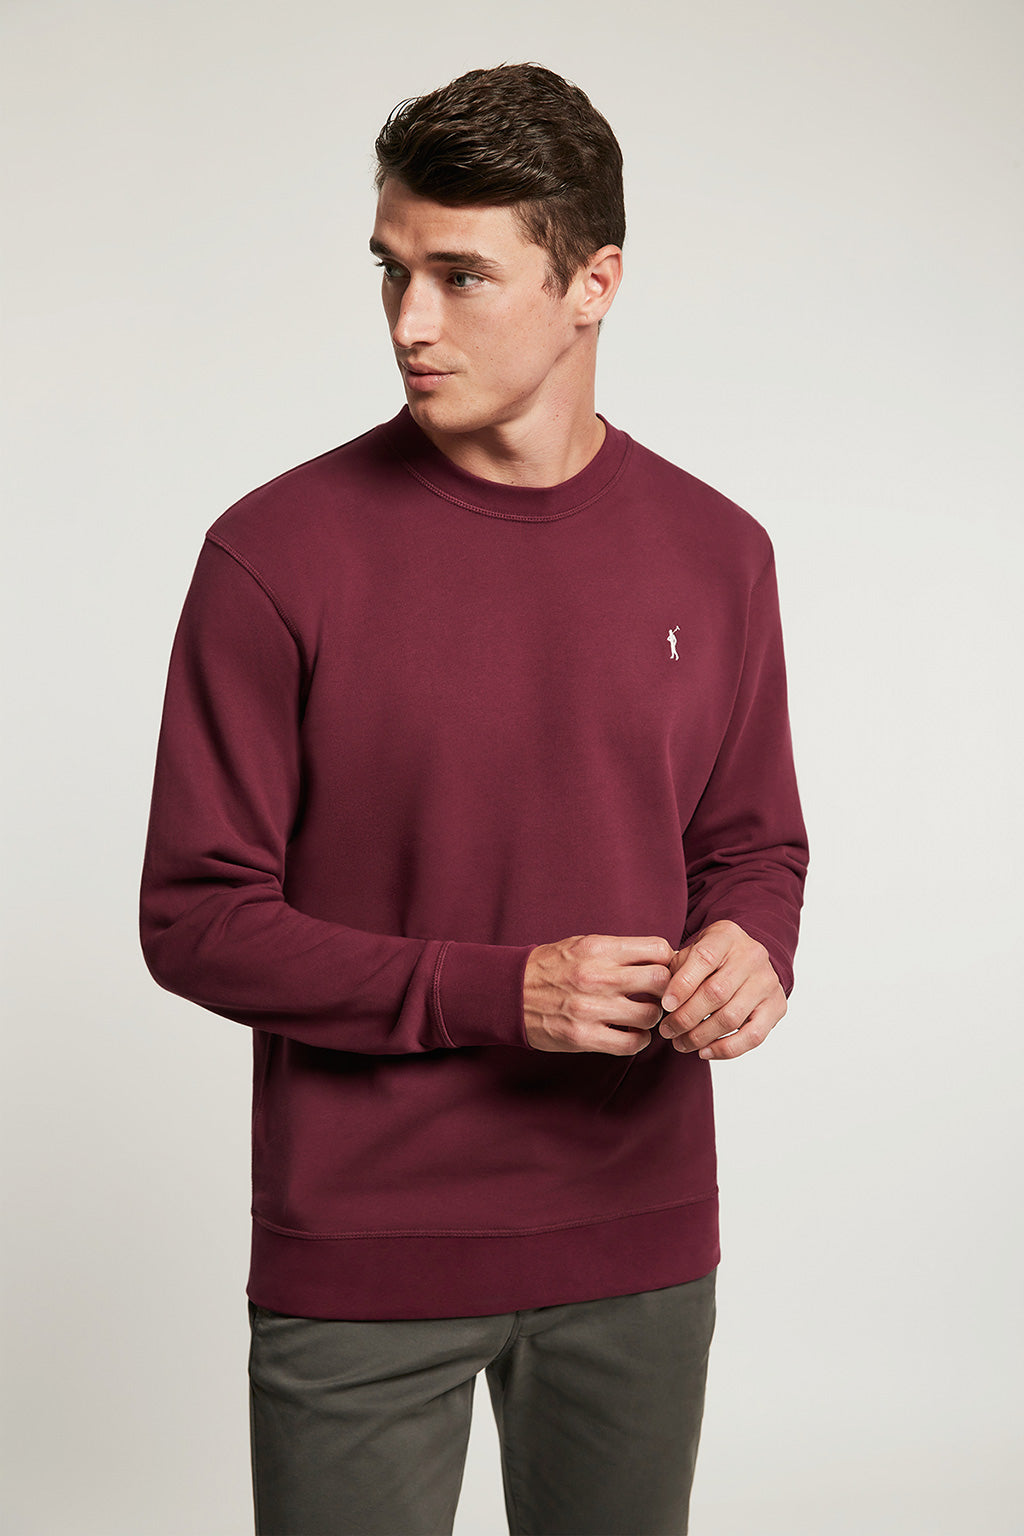 Burgundy organic sweatshirt with contrast embroidery